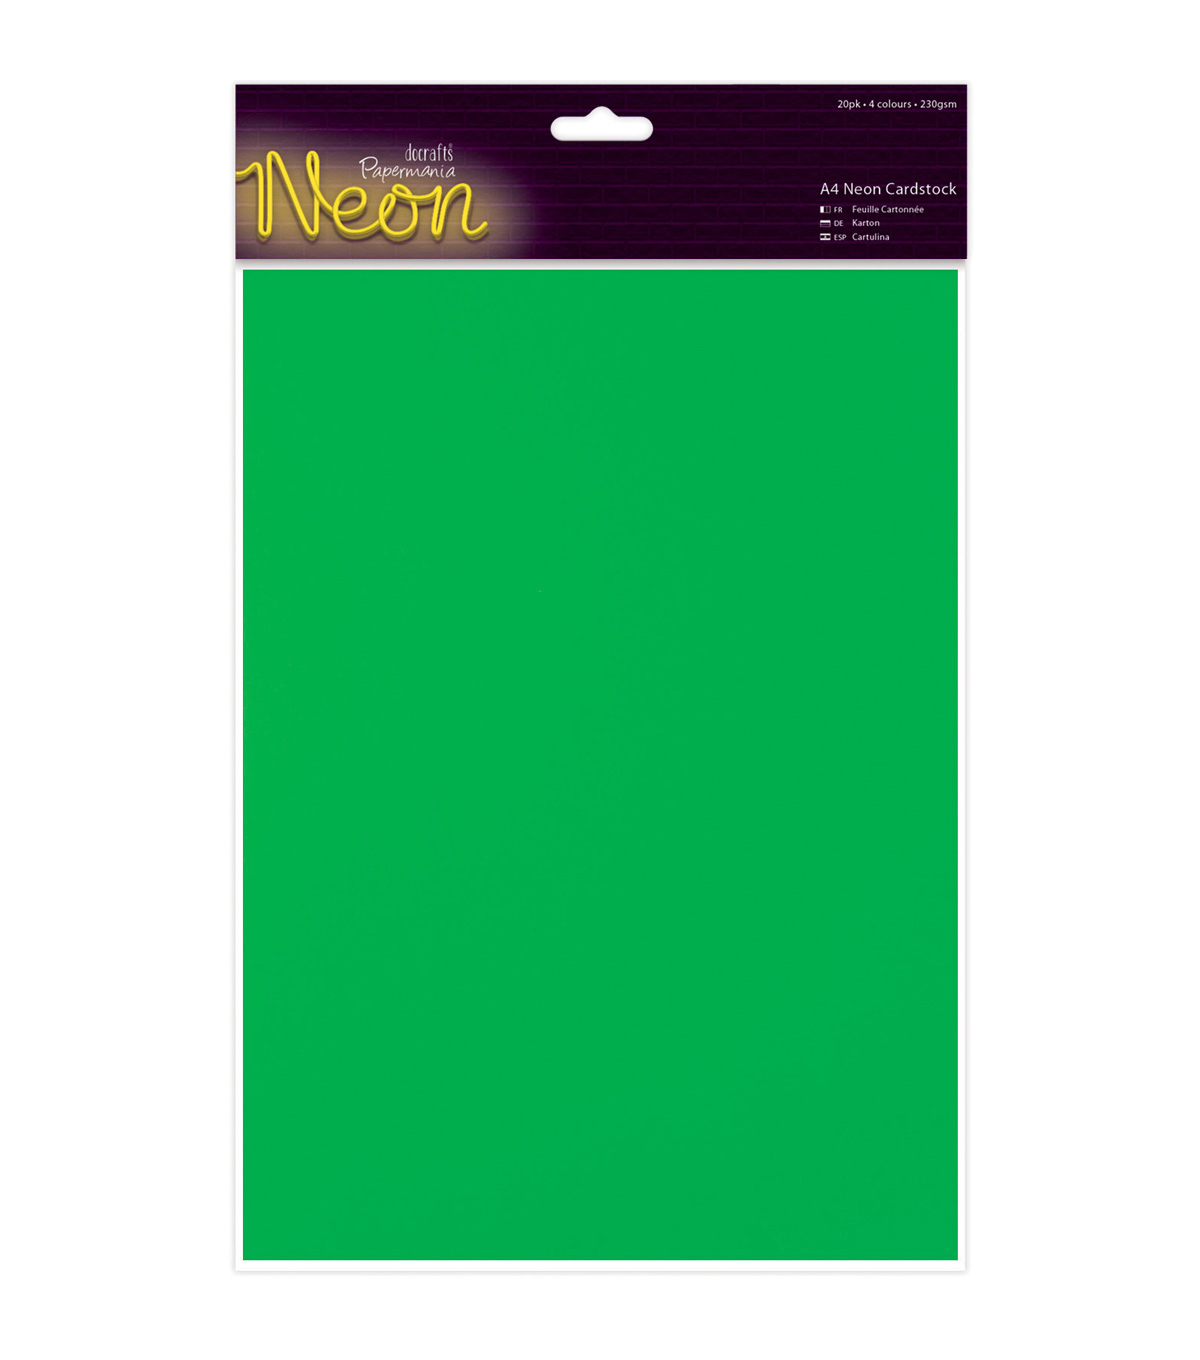 Papermania 20ct A4 Neon Cardstock